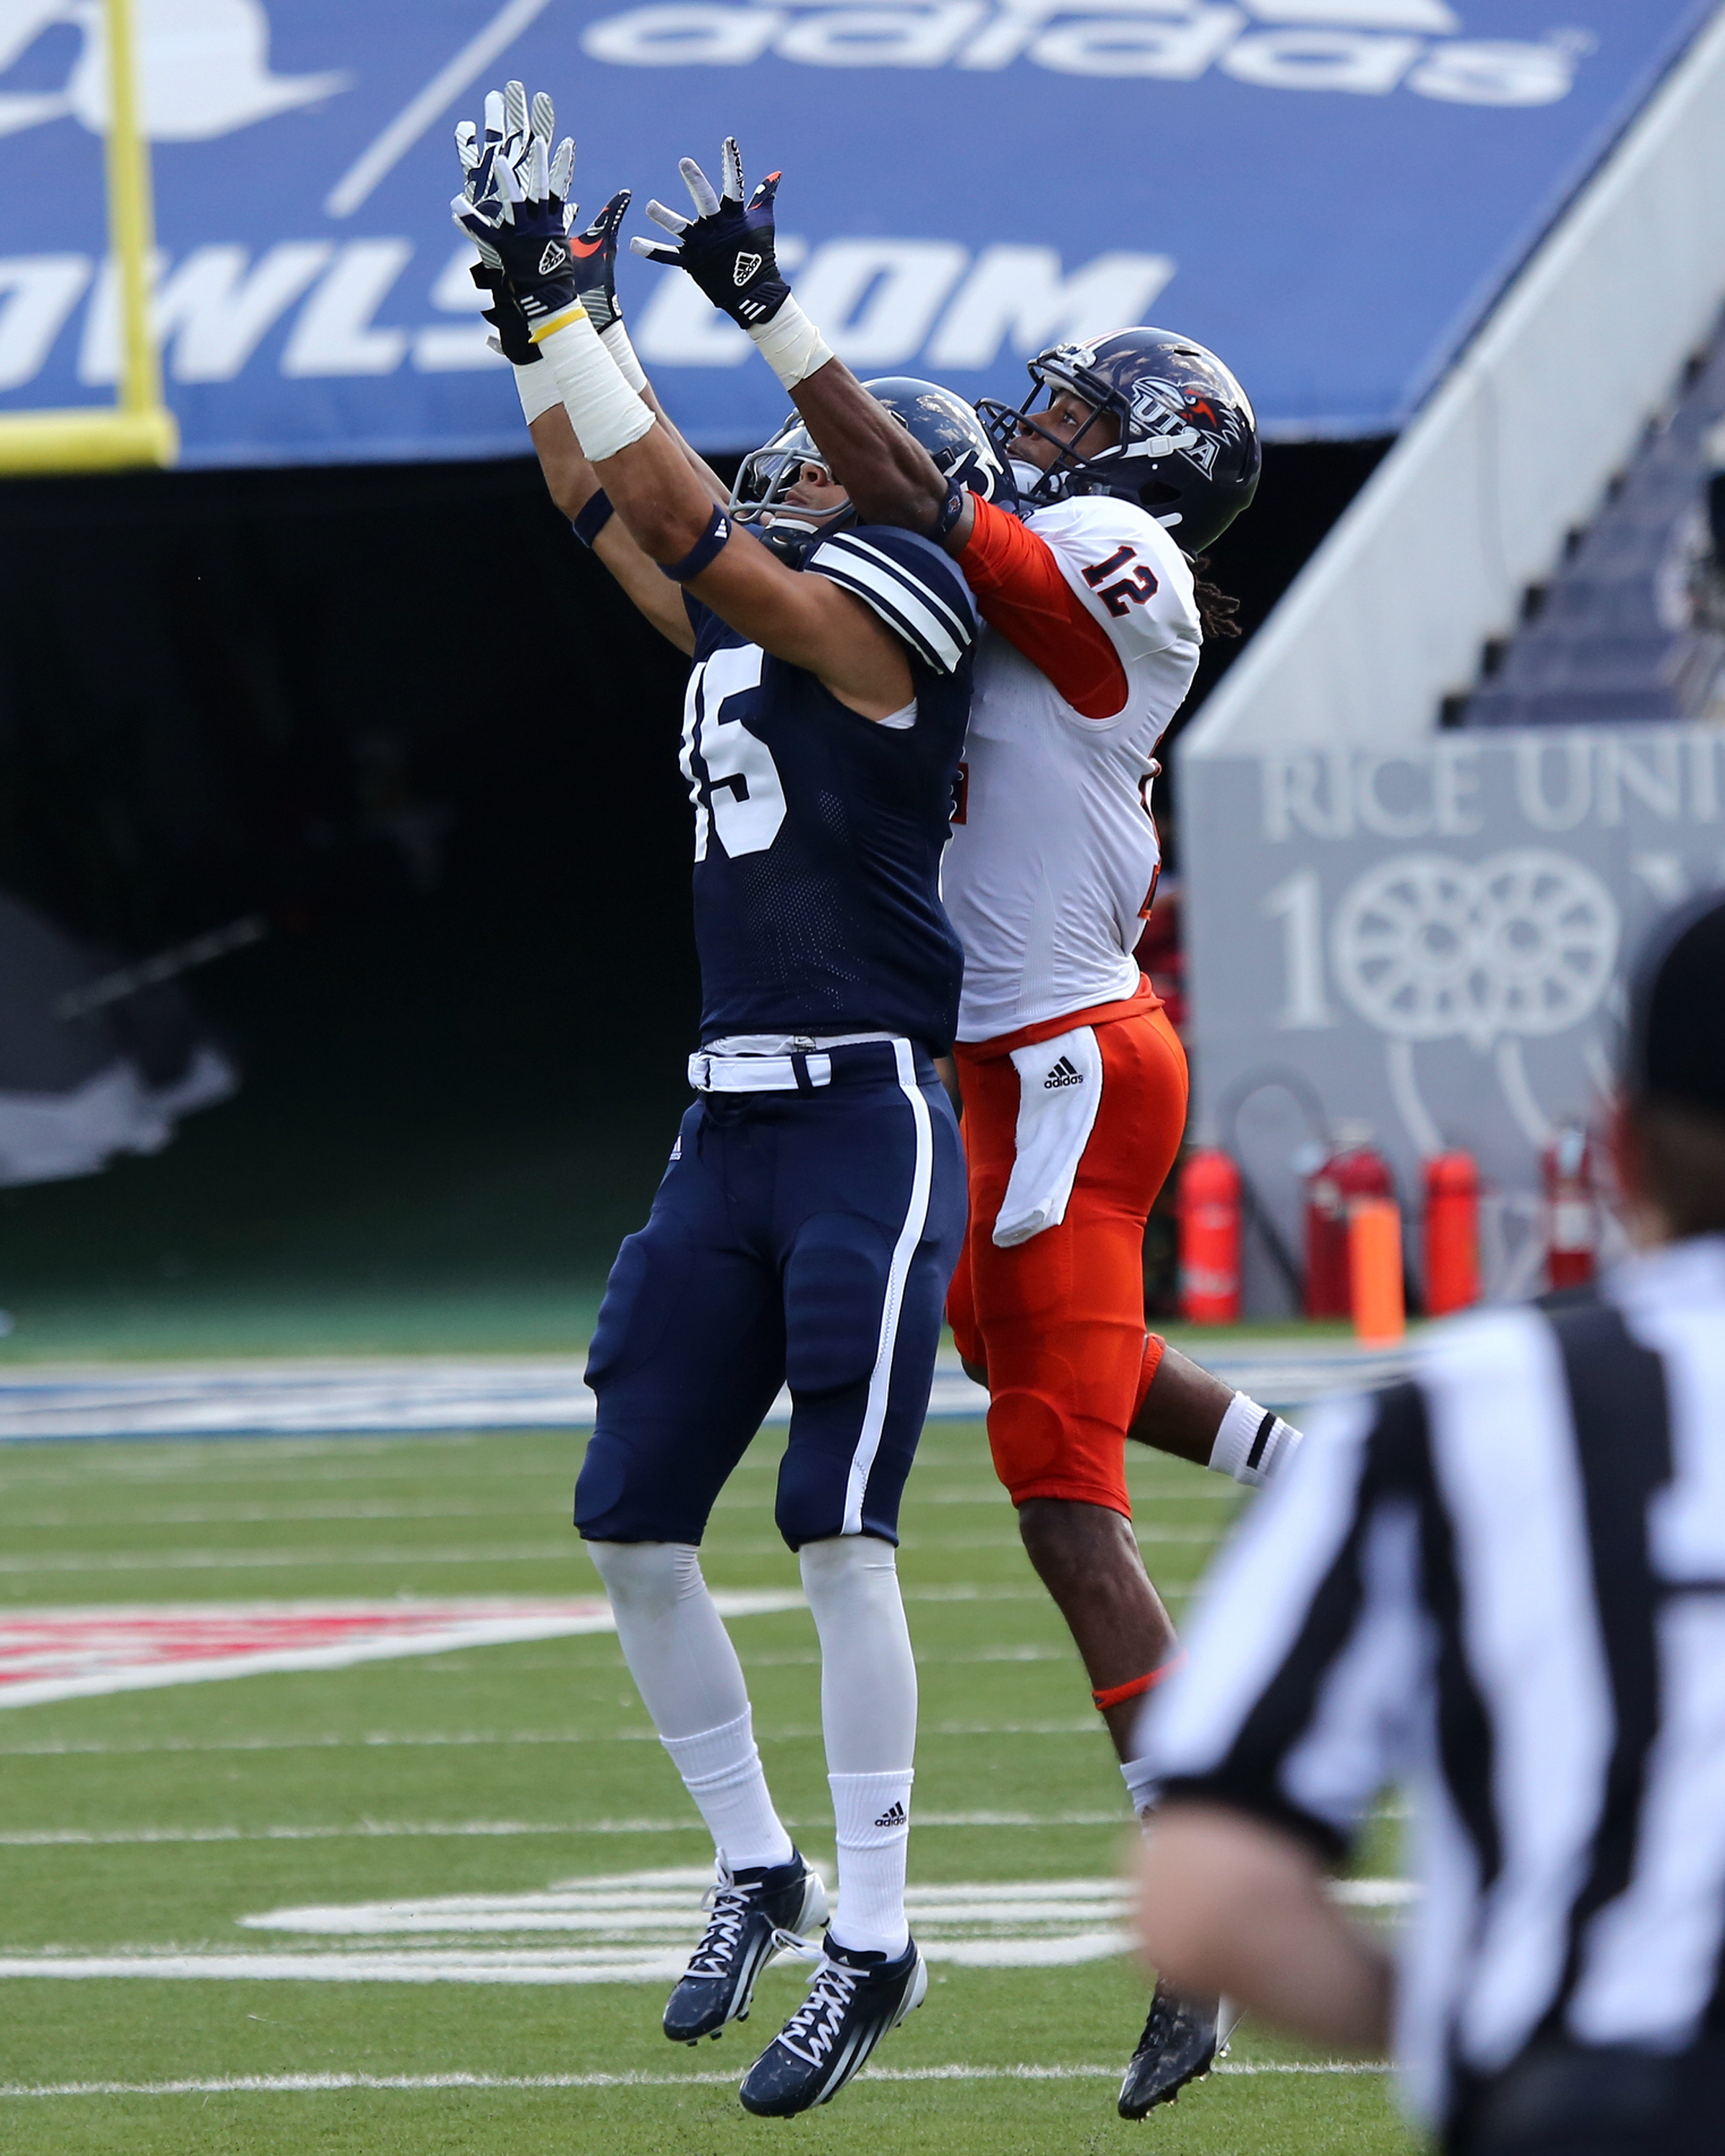 Phillip Gaines was second in the nation with 18 pass breakups.